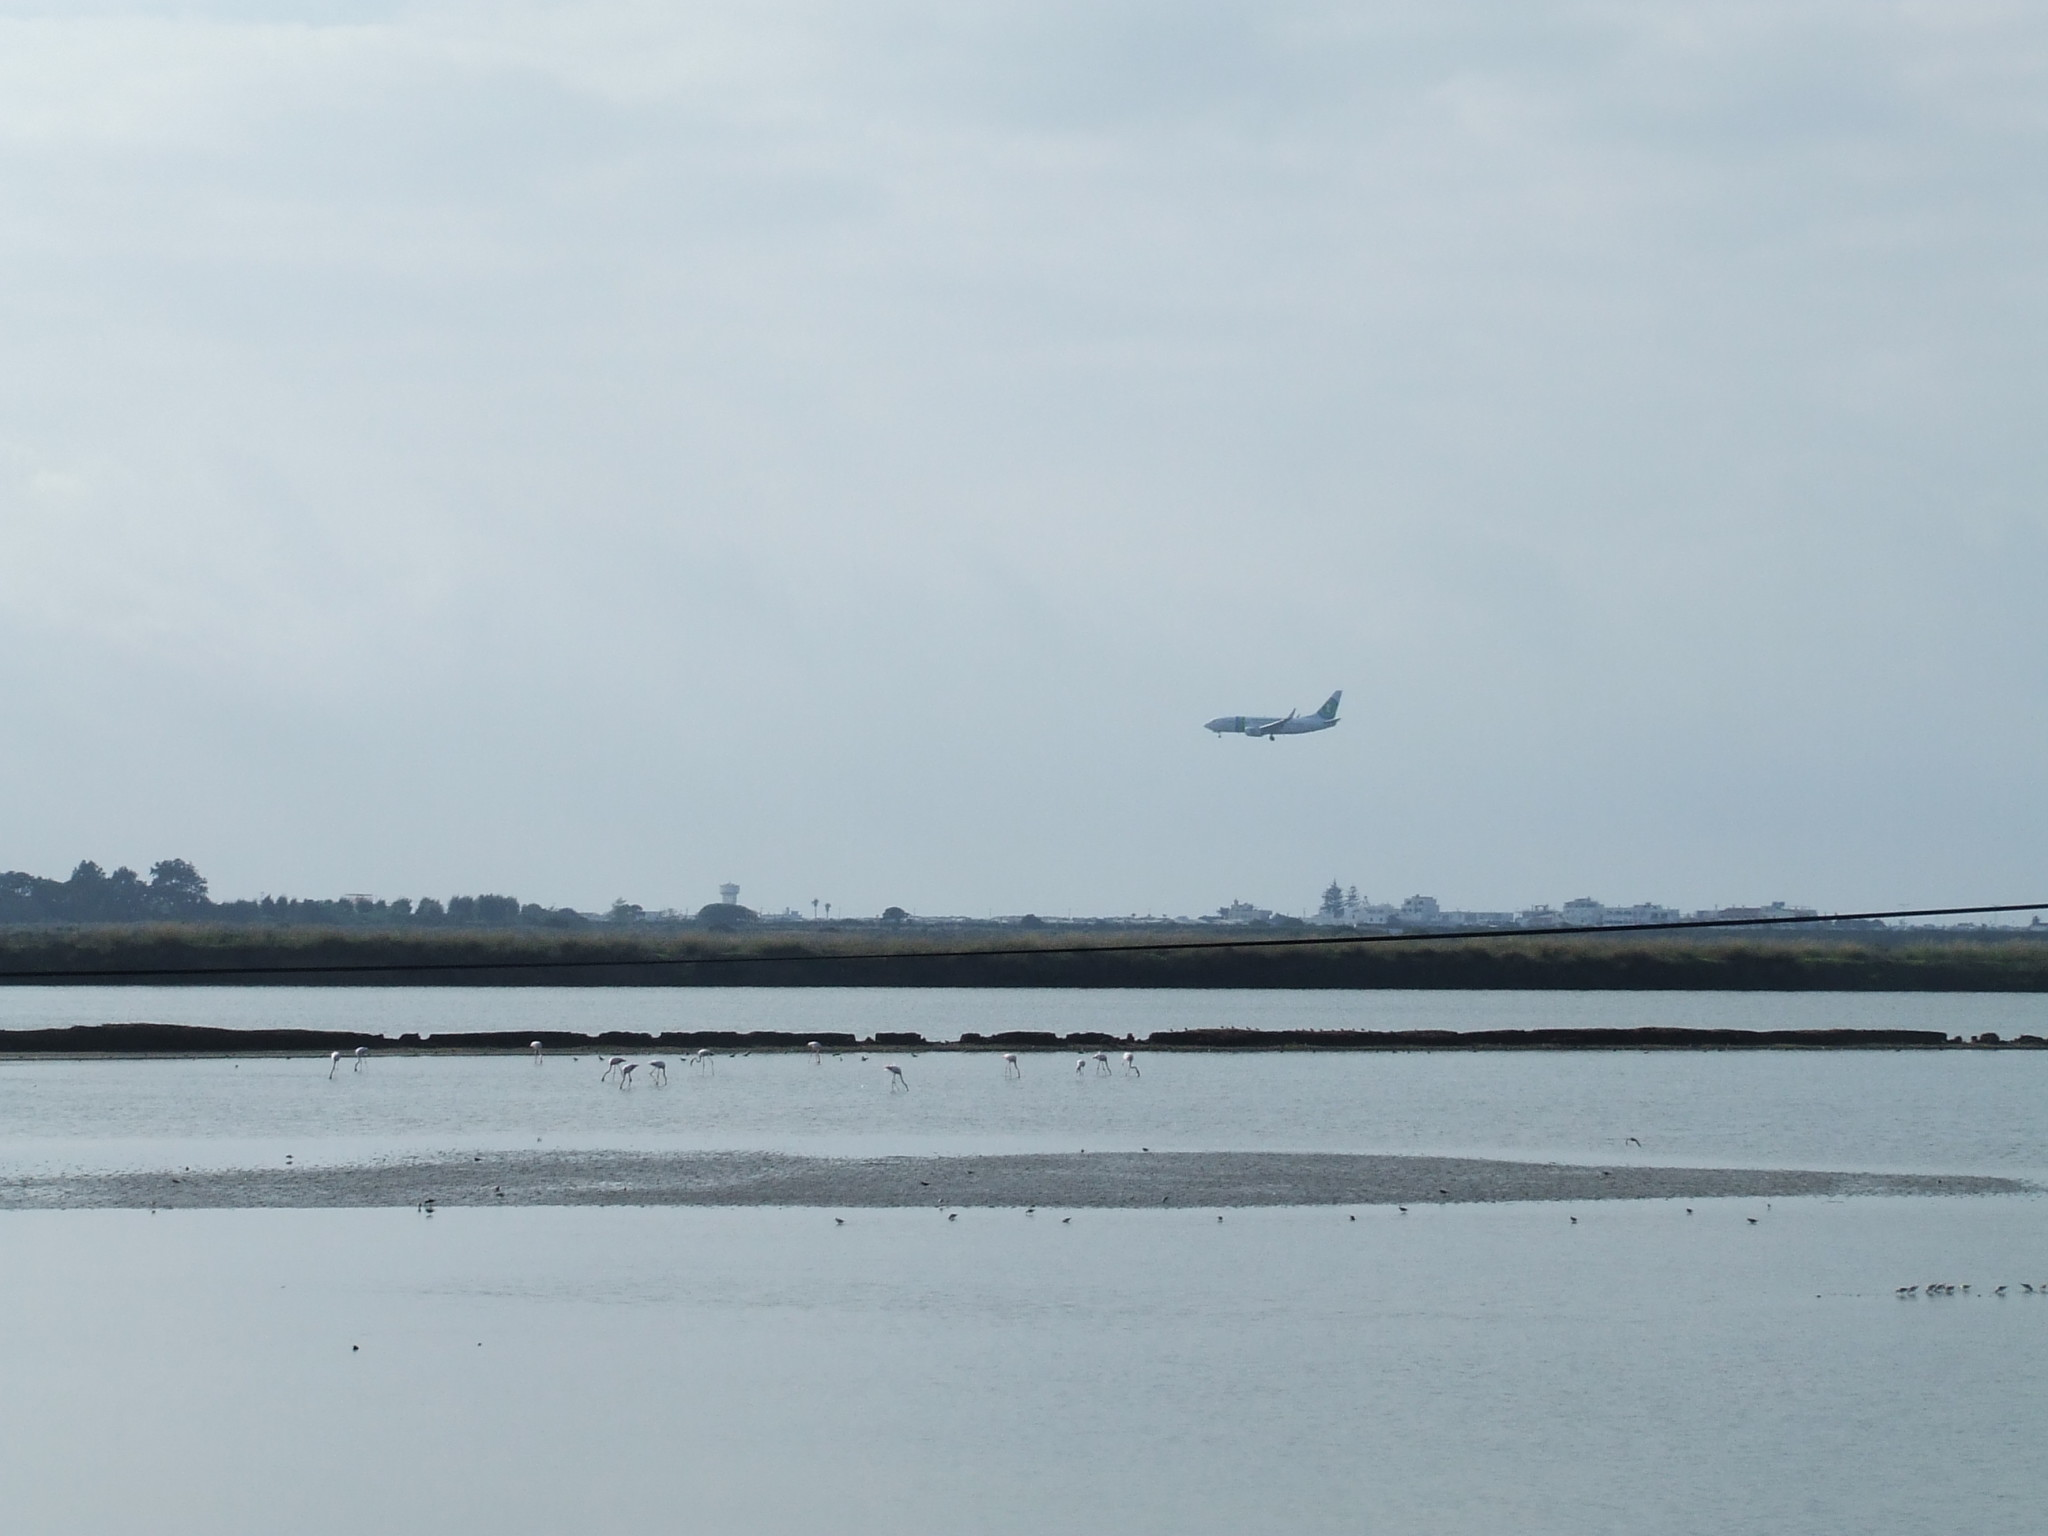 Plane flying over saltpans